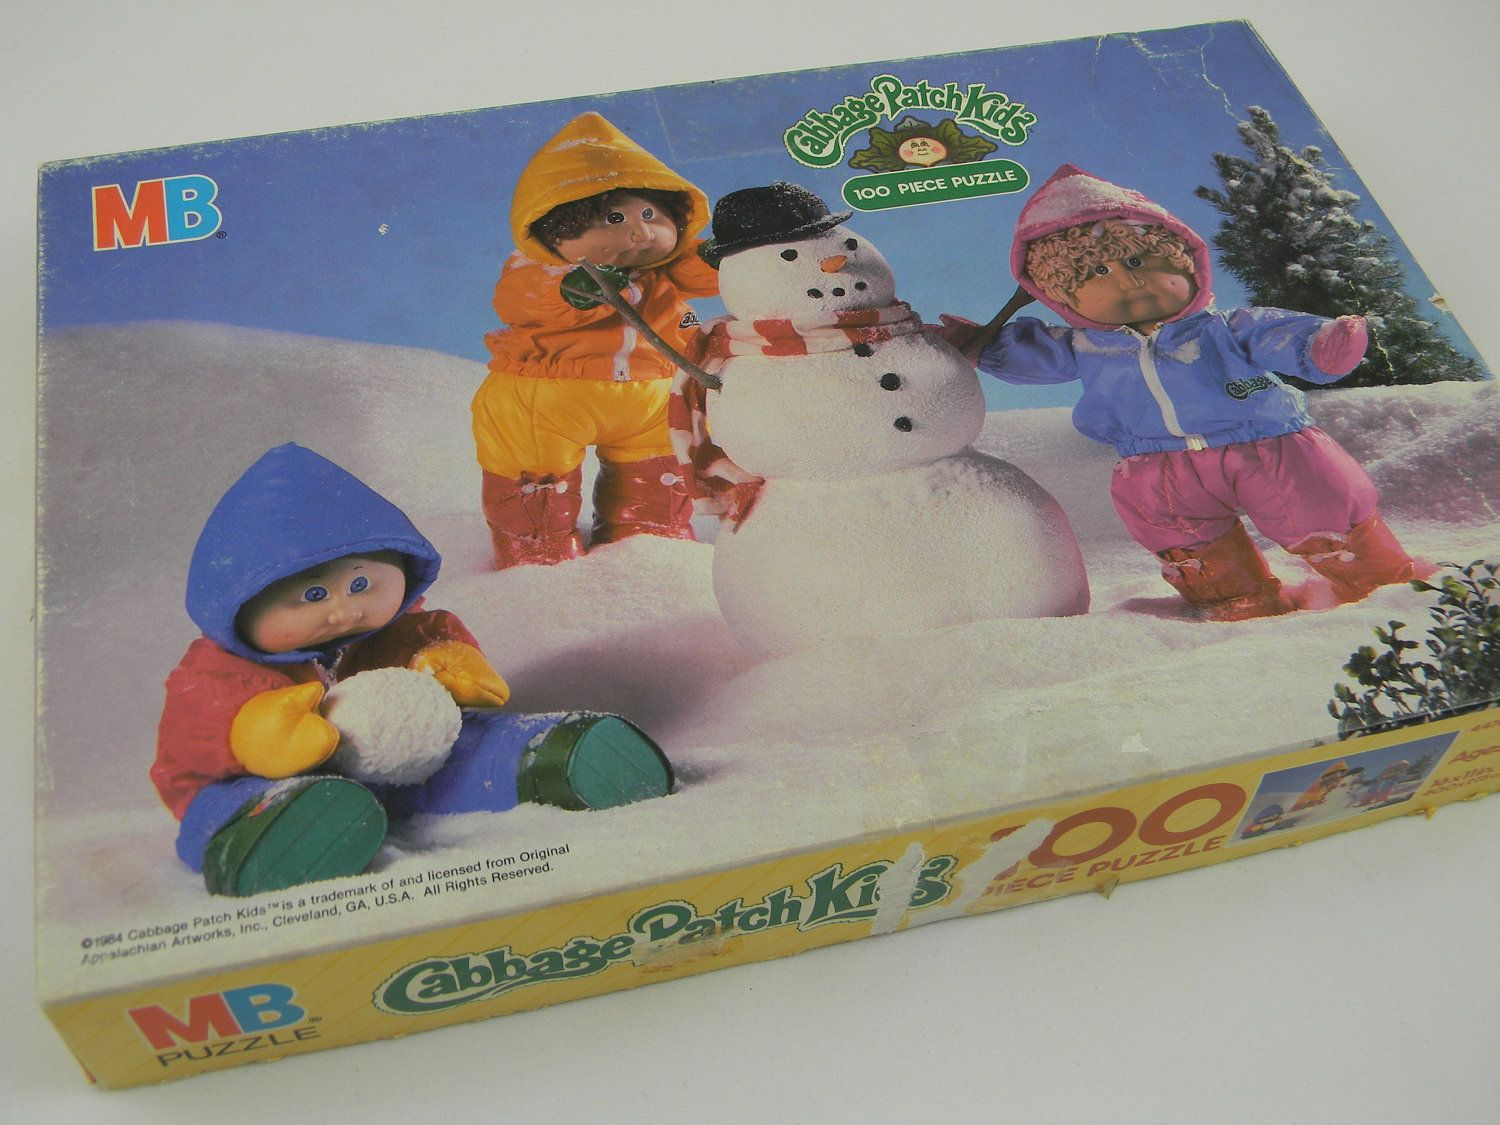 Cabbage Patch Kids Puzzle Sale By Lillysluckypenny On Etsy 7 75 Cabbage Patch Kids Puzzles For Kids Childhood Toys